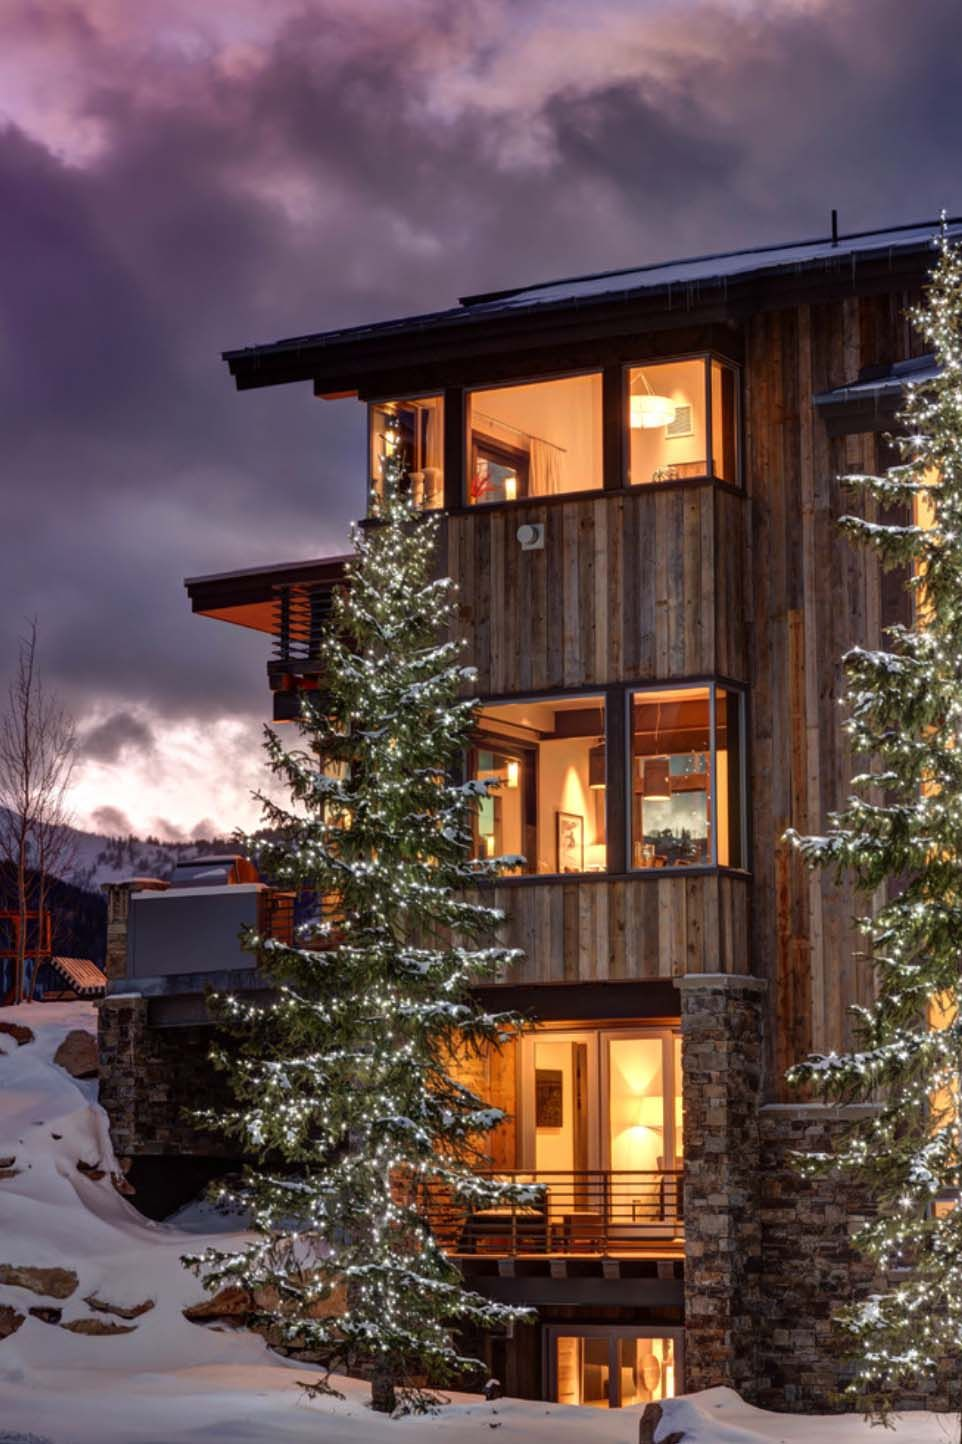 Luxurious mountain home in utah lets you ski to your door